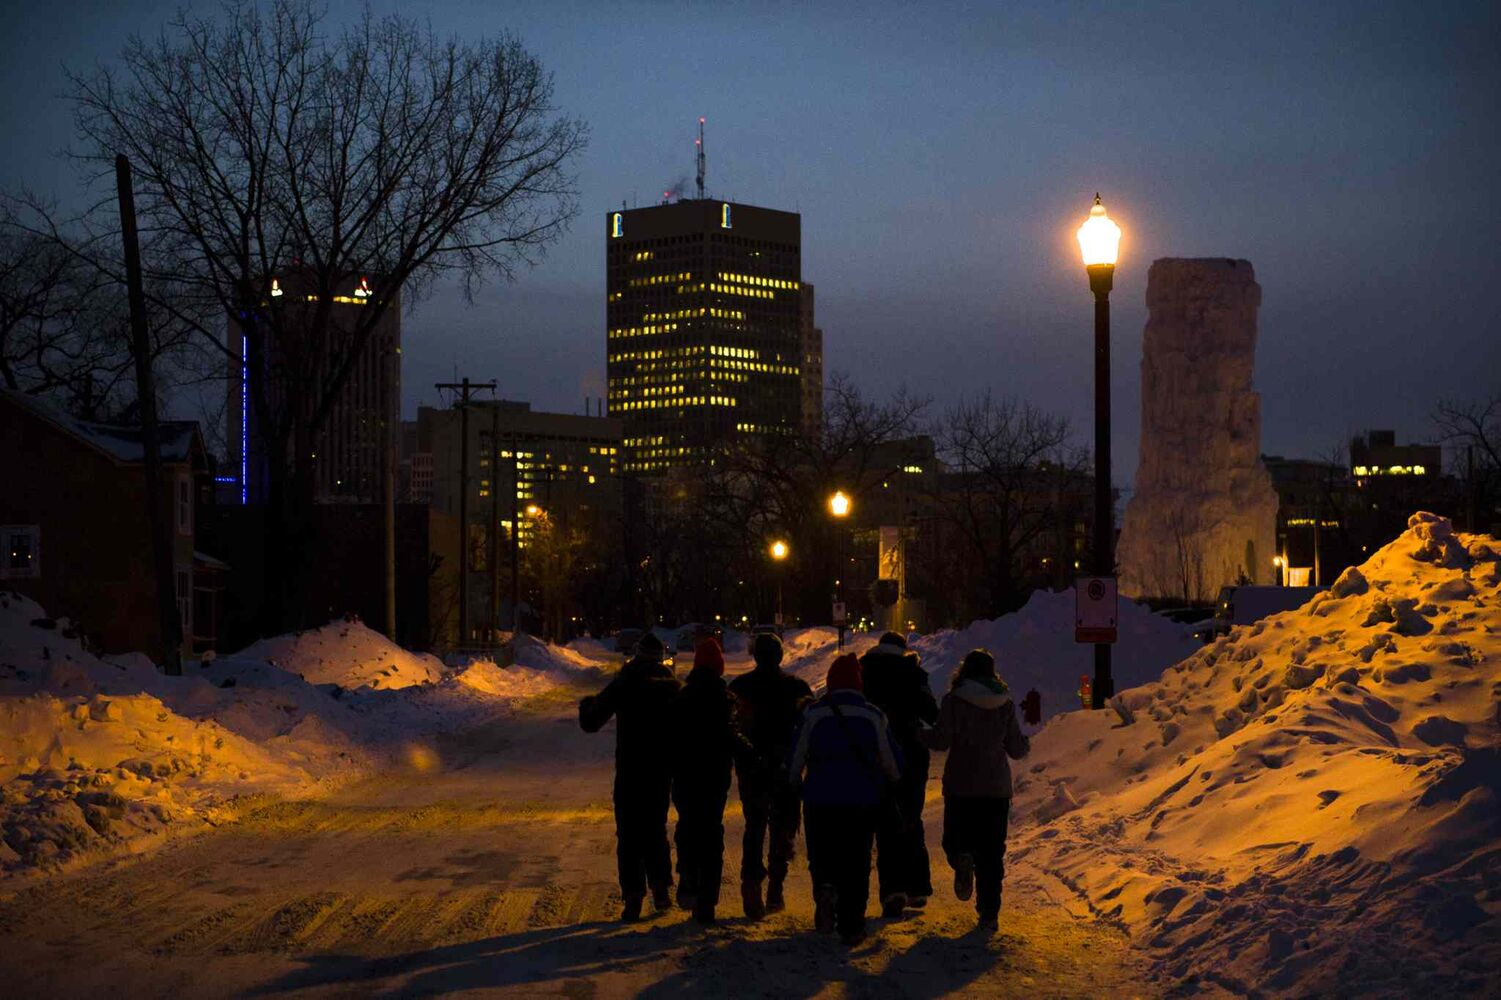 Festival-goers leave the park Saturday evening.  (David Lipnowski / Winnipeg Free Press)